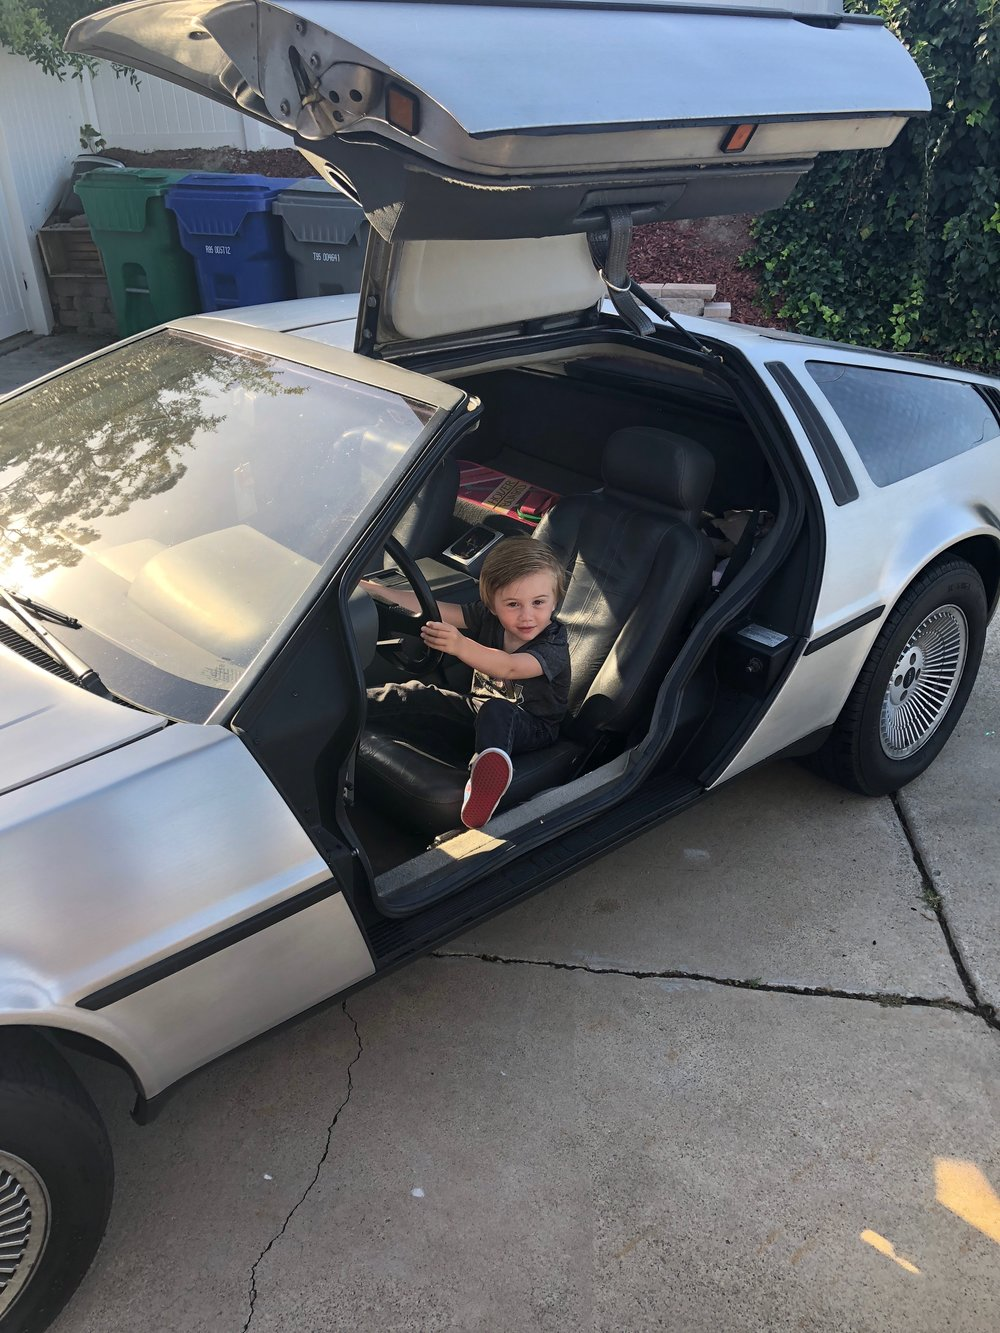 EmmettHoey_DeLorean.jpeg